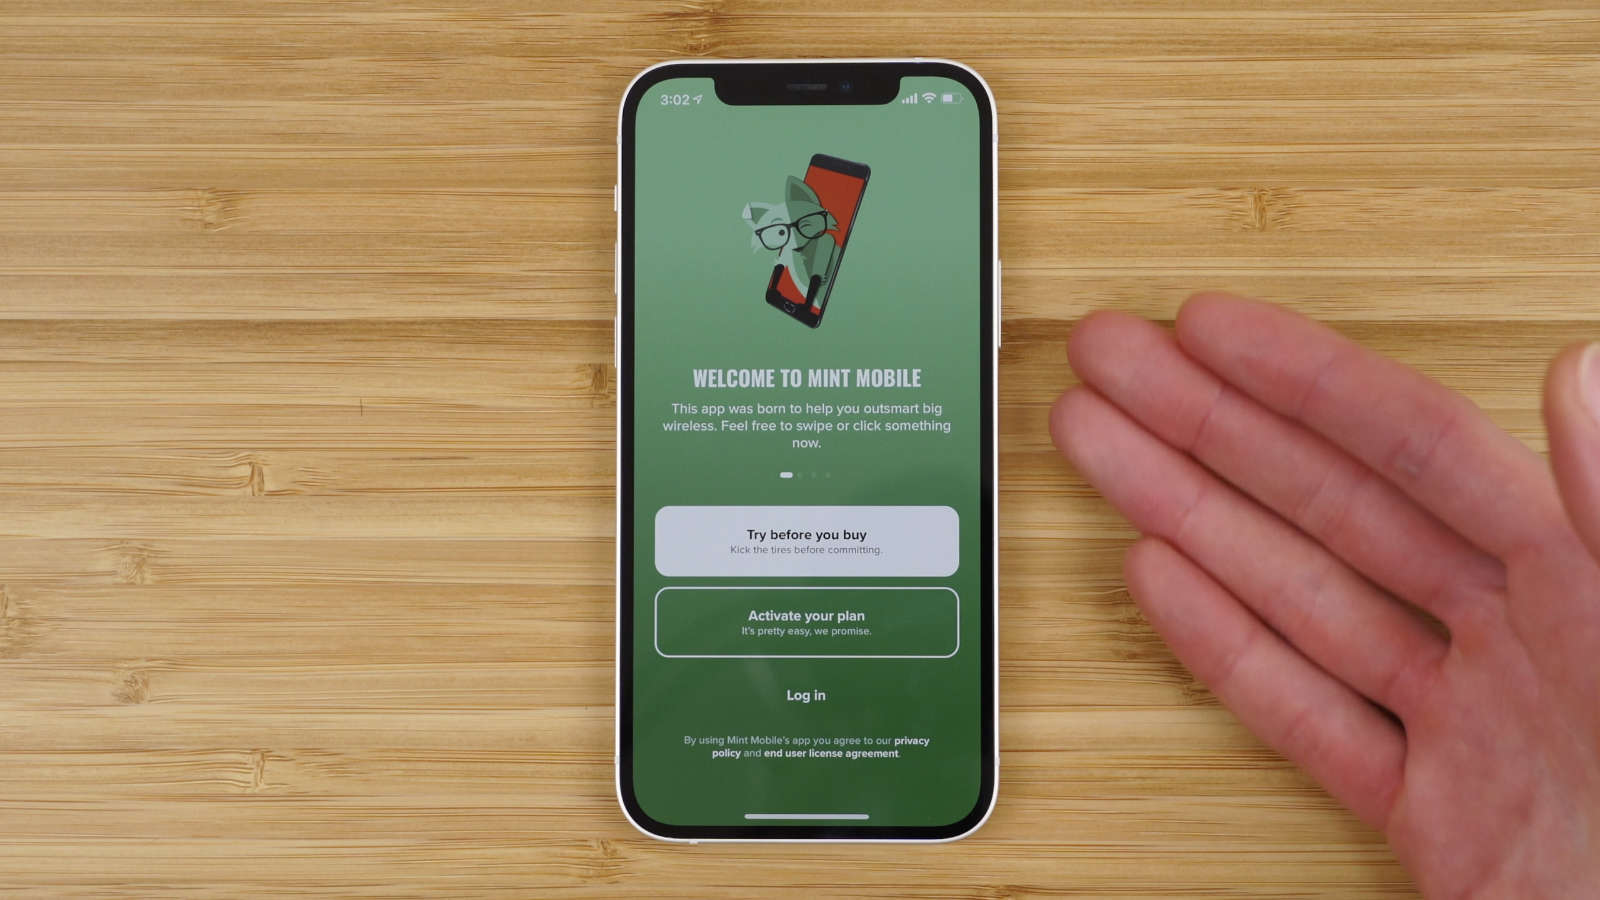 Mint Mobile application launch screen